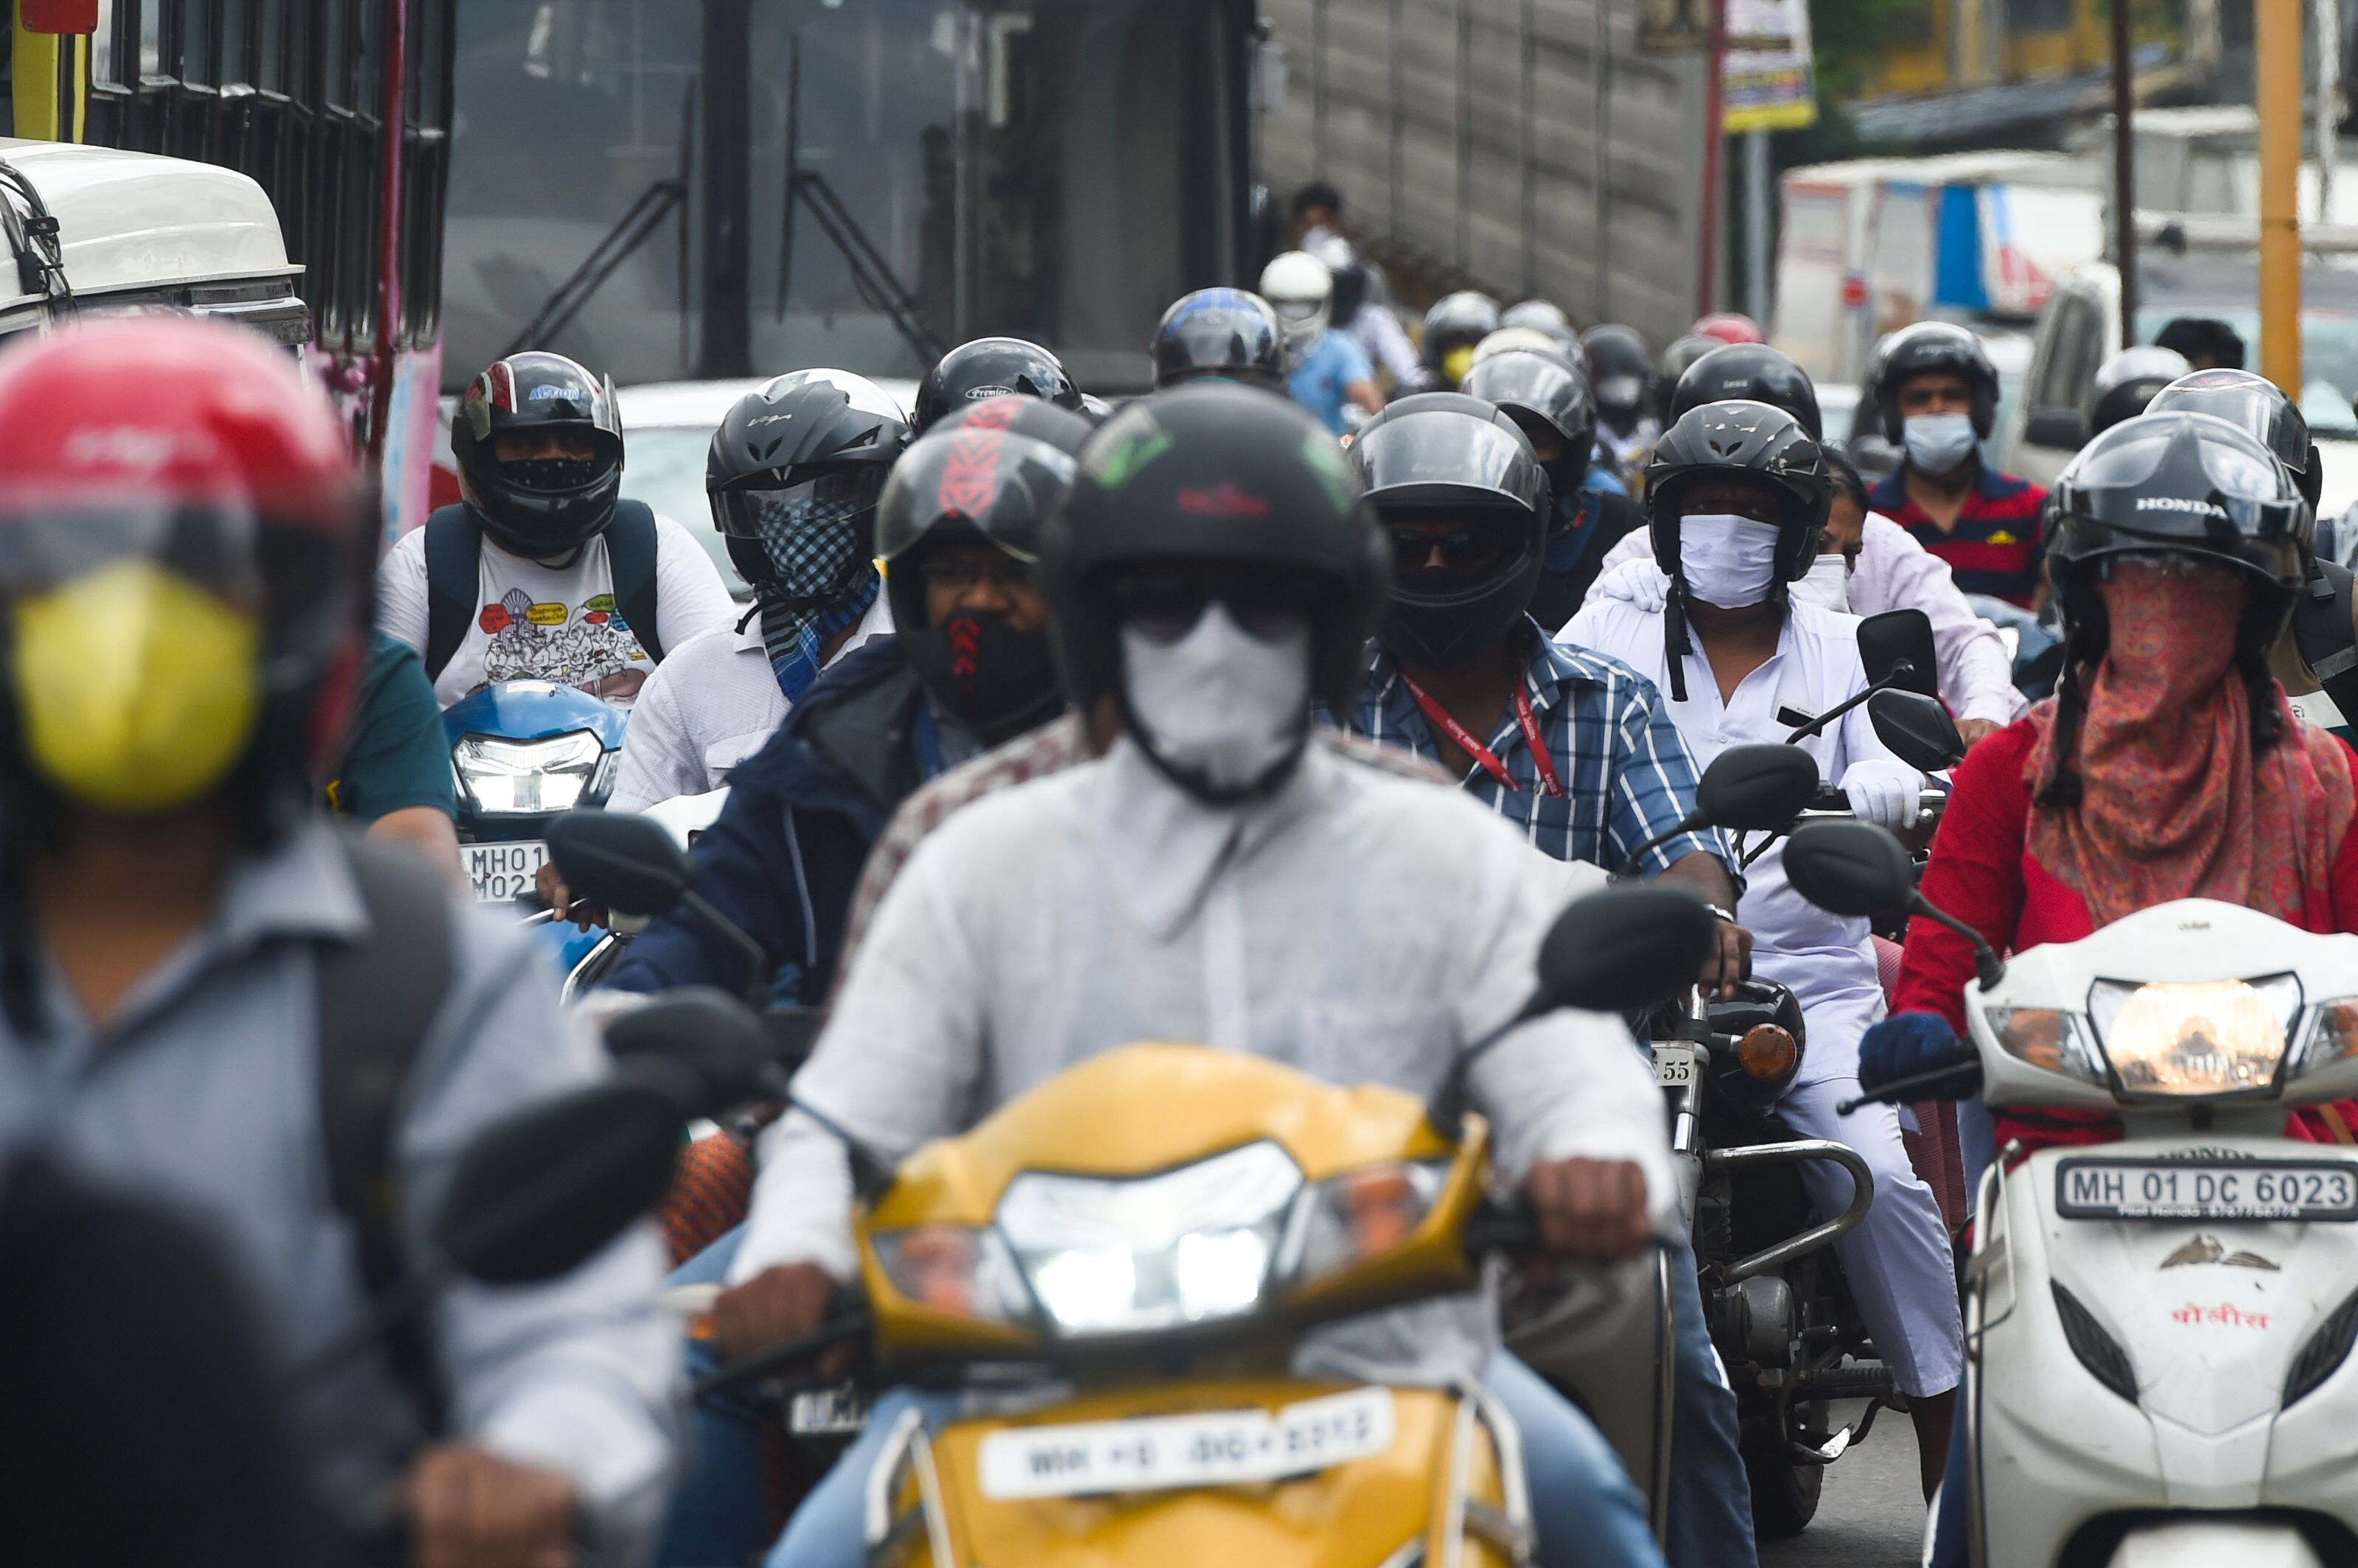 Commuters are seen in a traffic jam during rush hour as places of religious worship, hotels, restaurants and shopping malls are allowed to operate again after more than two months of lockdown imposed as a preventive measure against the COVID-19 coronavirus, in Mumbai on June 8, 2020. (Photo by Punit PARANJPE / AFP) (Photo by PUNIT PARANJPE/AFP via Getty Images)